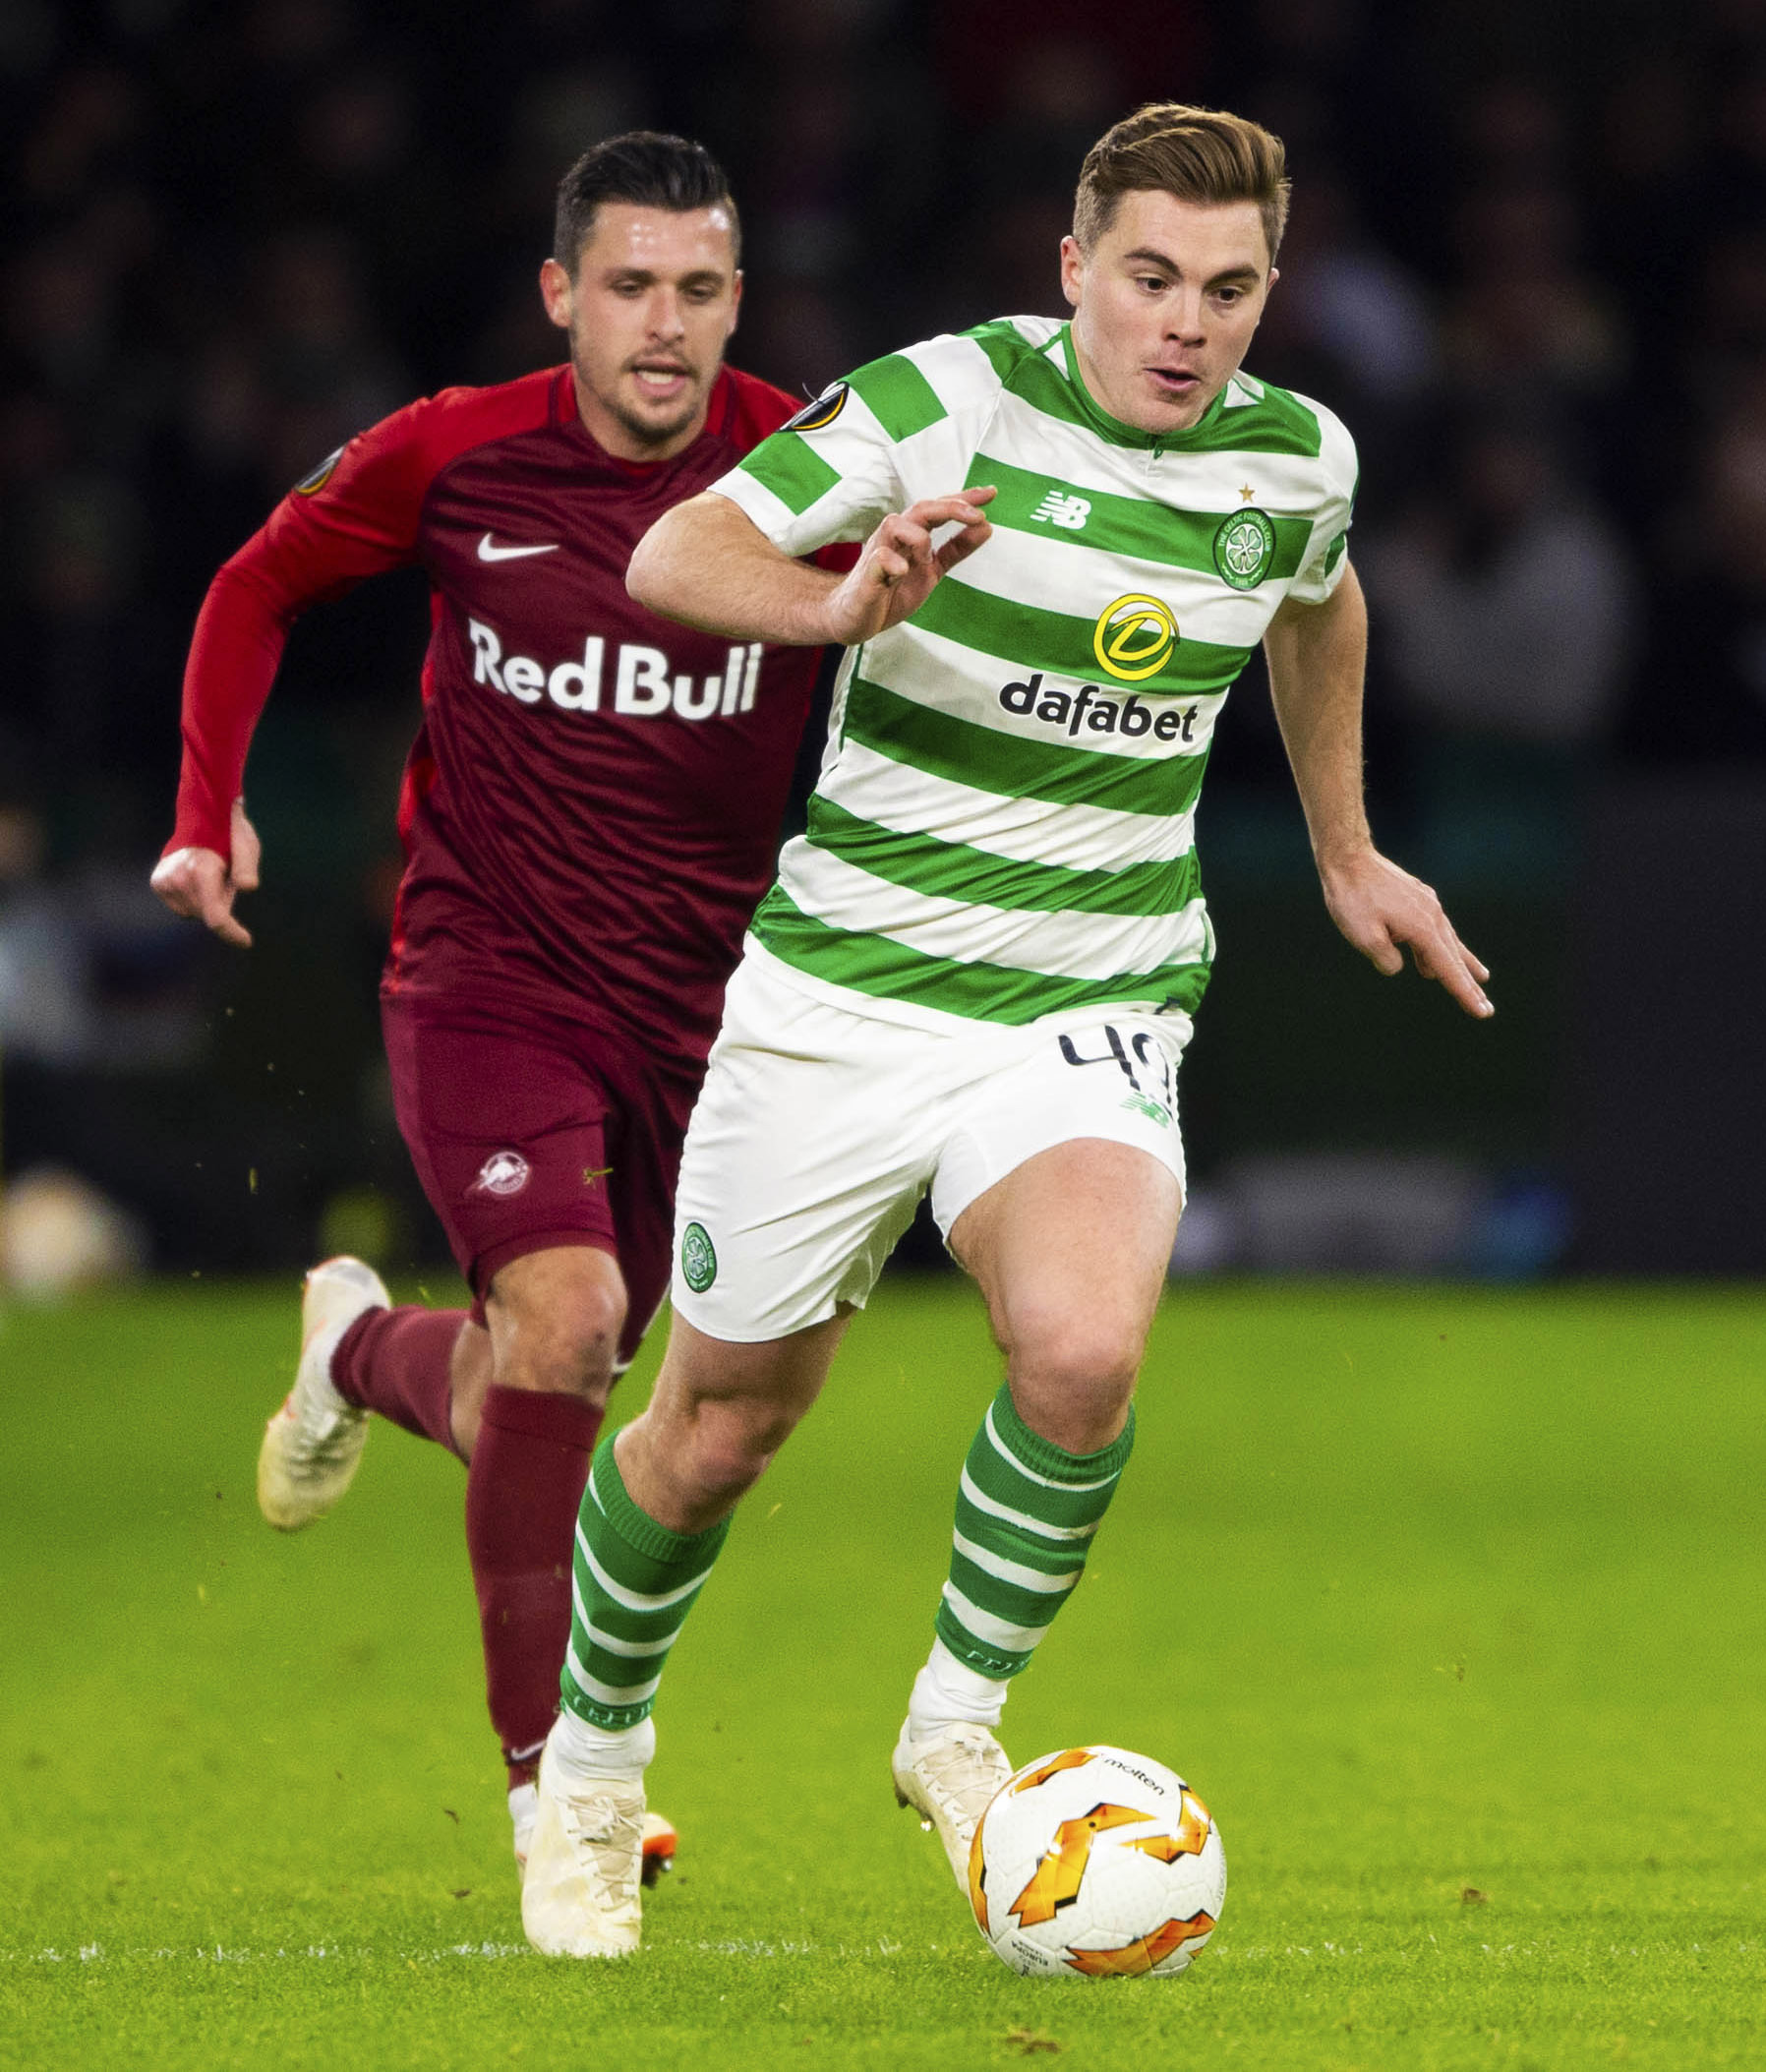 13/12/18 EUROPA LEAGUE GROUP B.CELTIC v RED BULL SALZBURG (1-2).CELTIC PARK - GLASGOW.Celtic's James Forrest (R) competes with Salzburg's Zlatko Junuzovic..